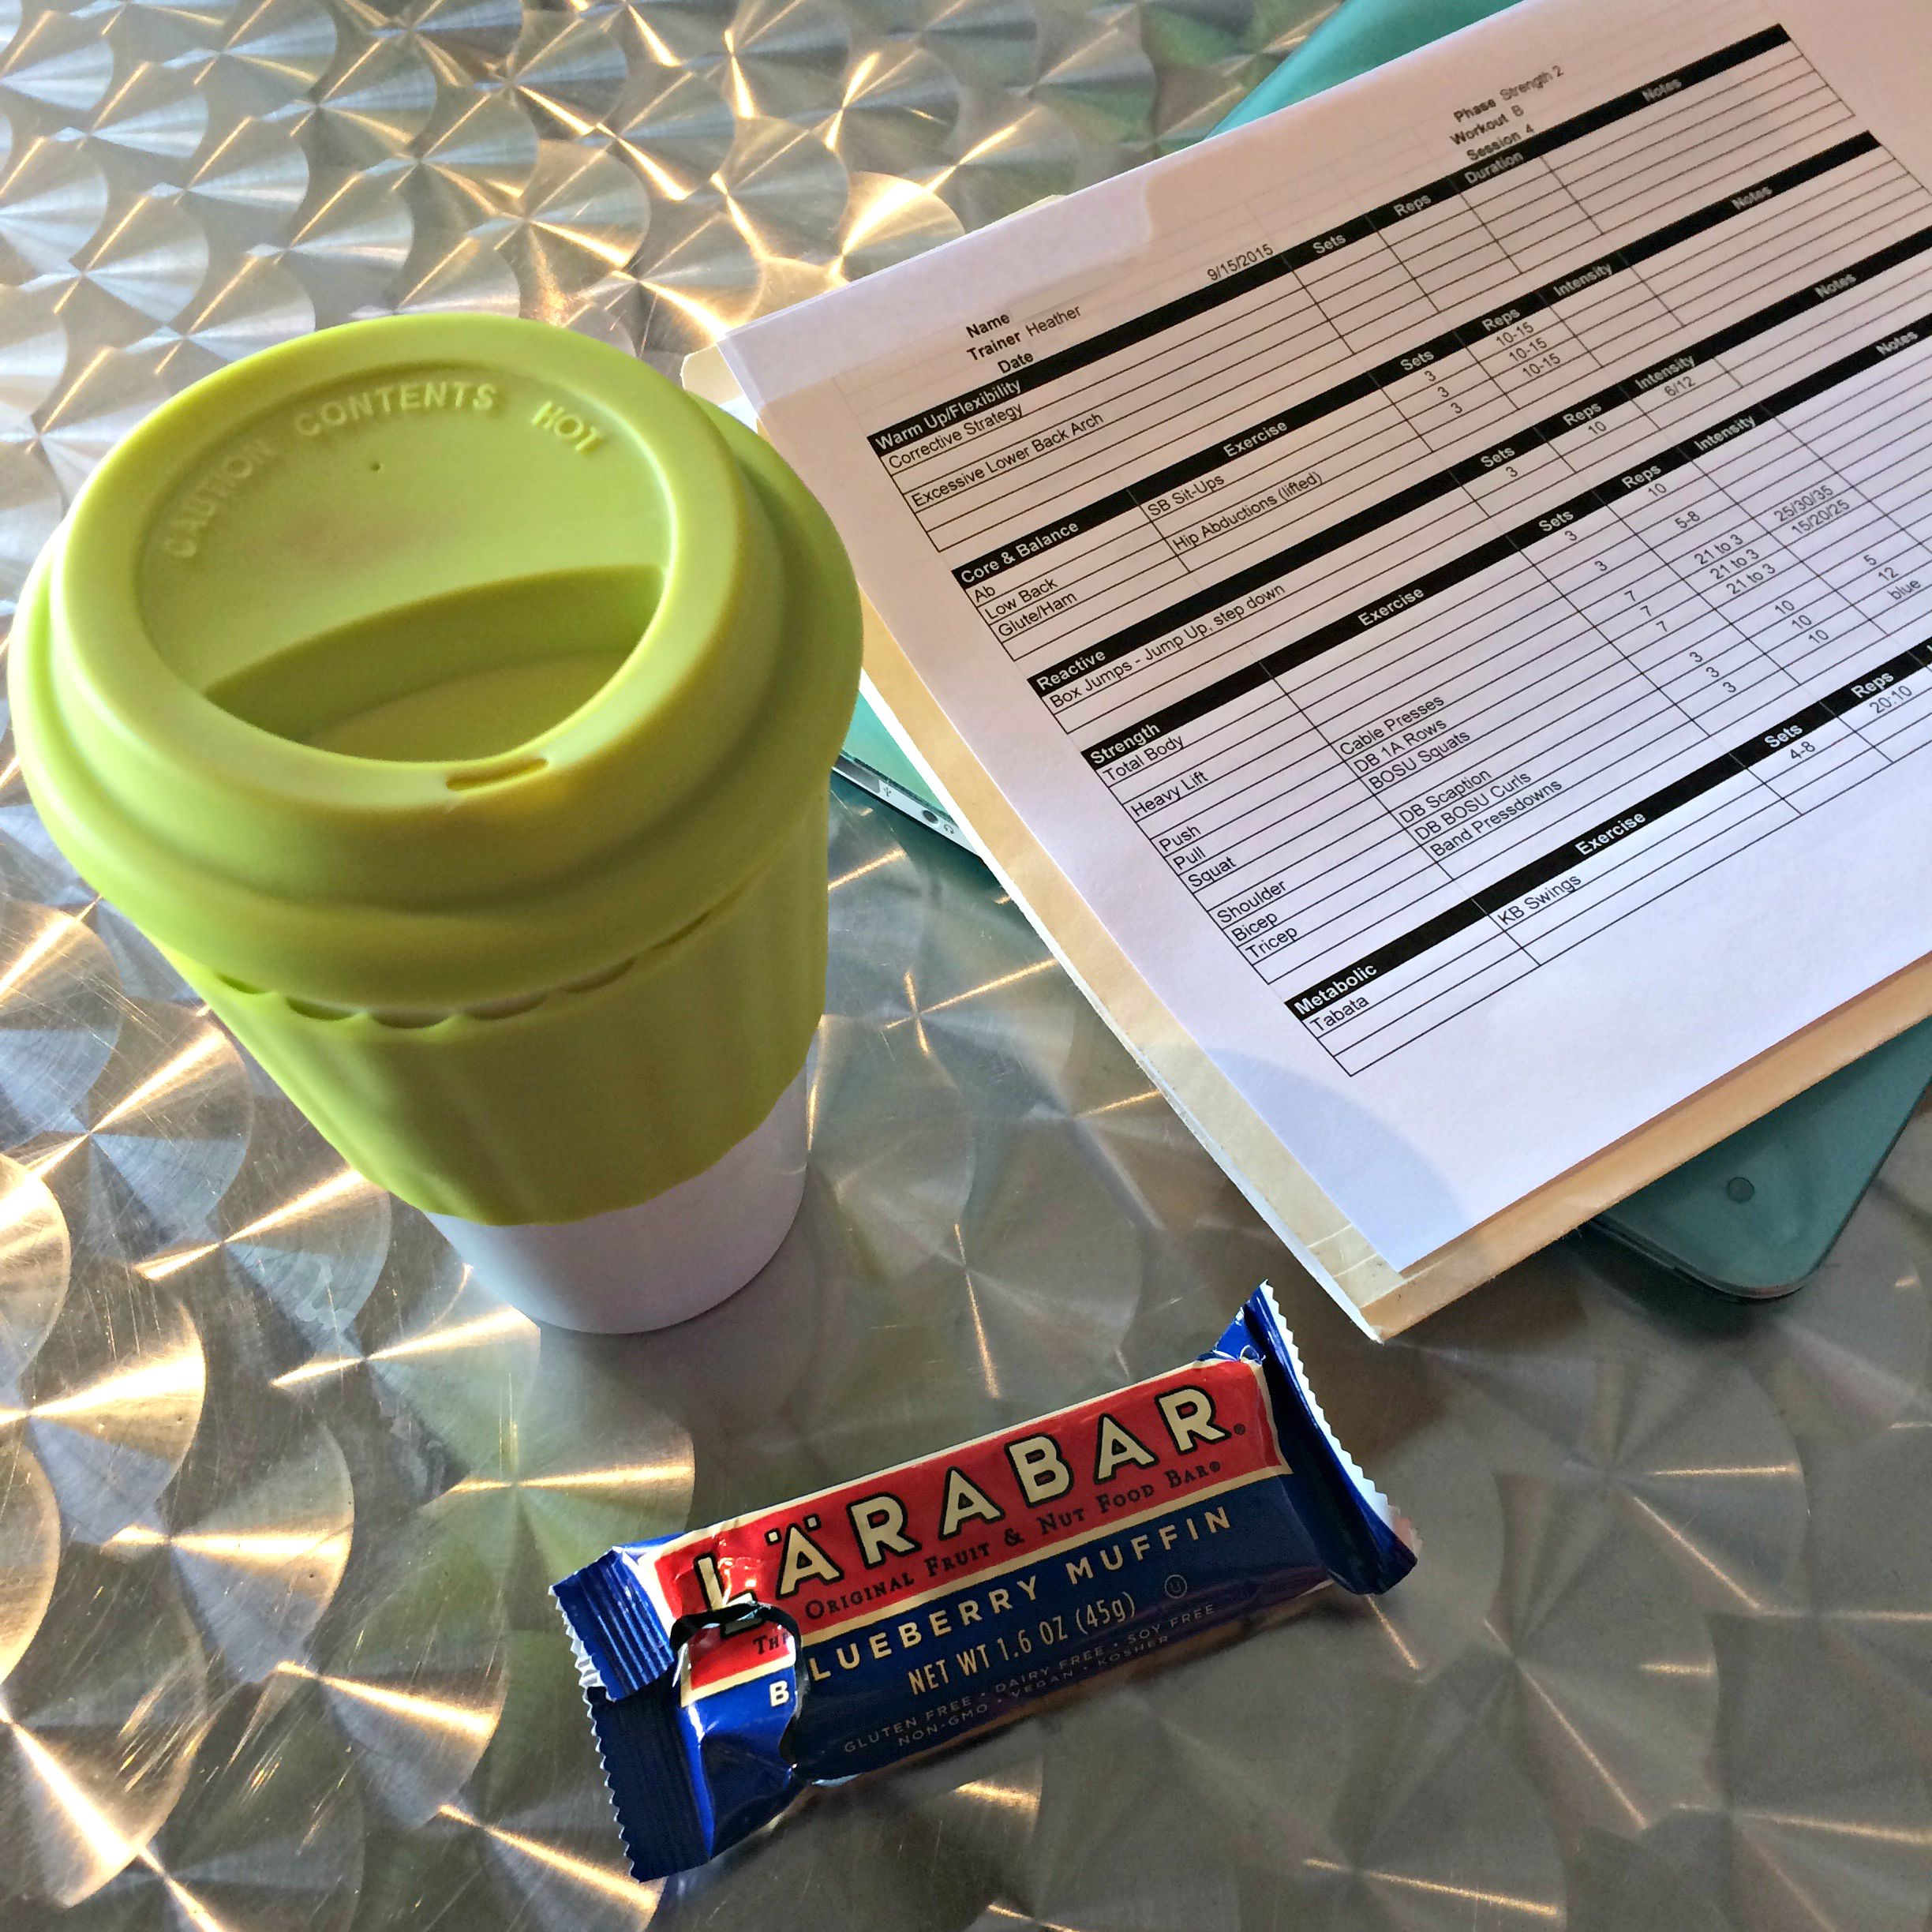 tea and blueberry muffin larabar while planning workouts